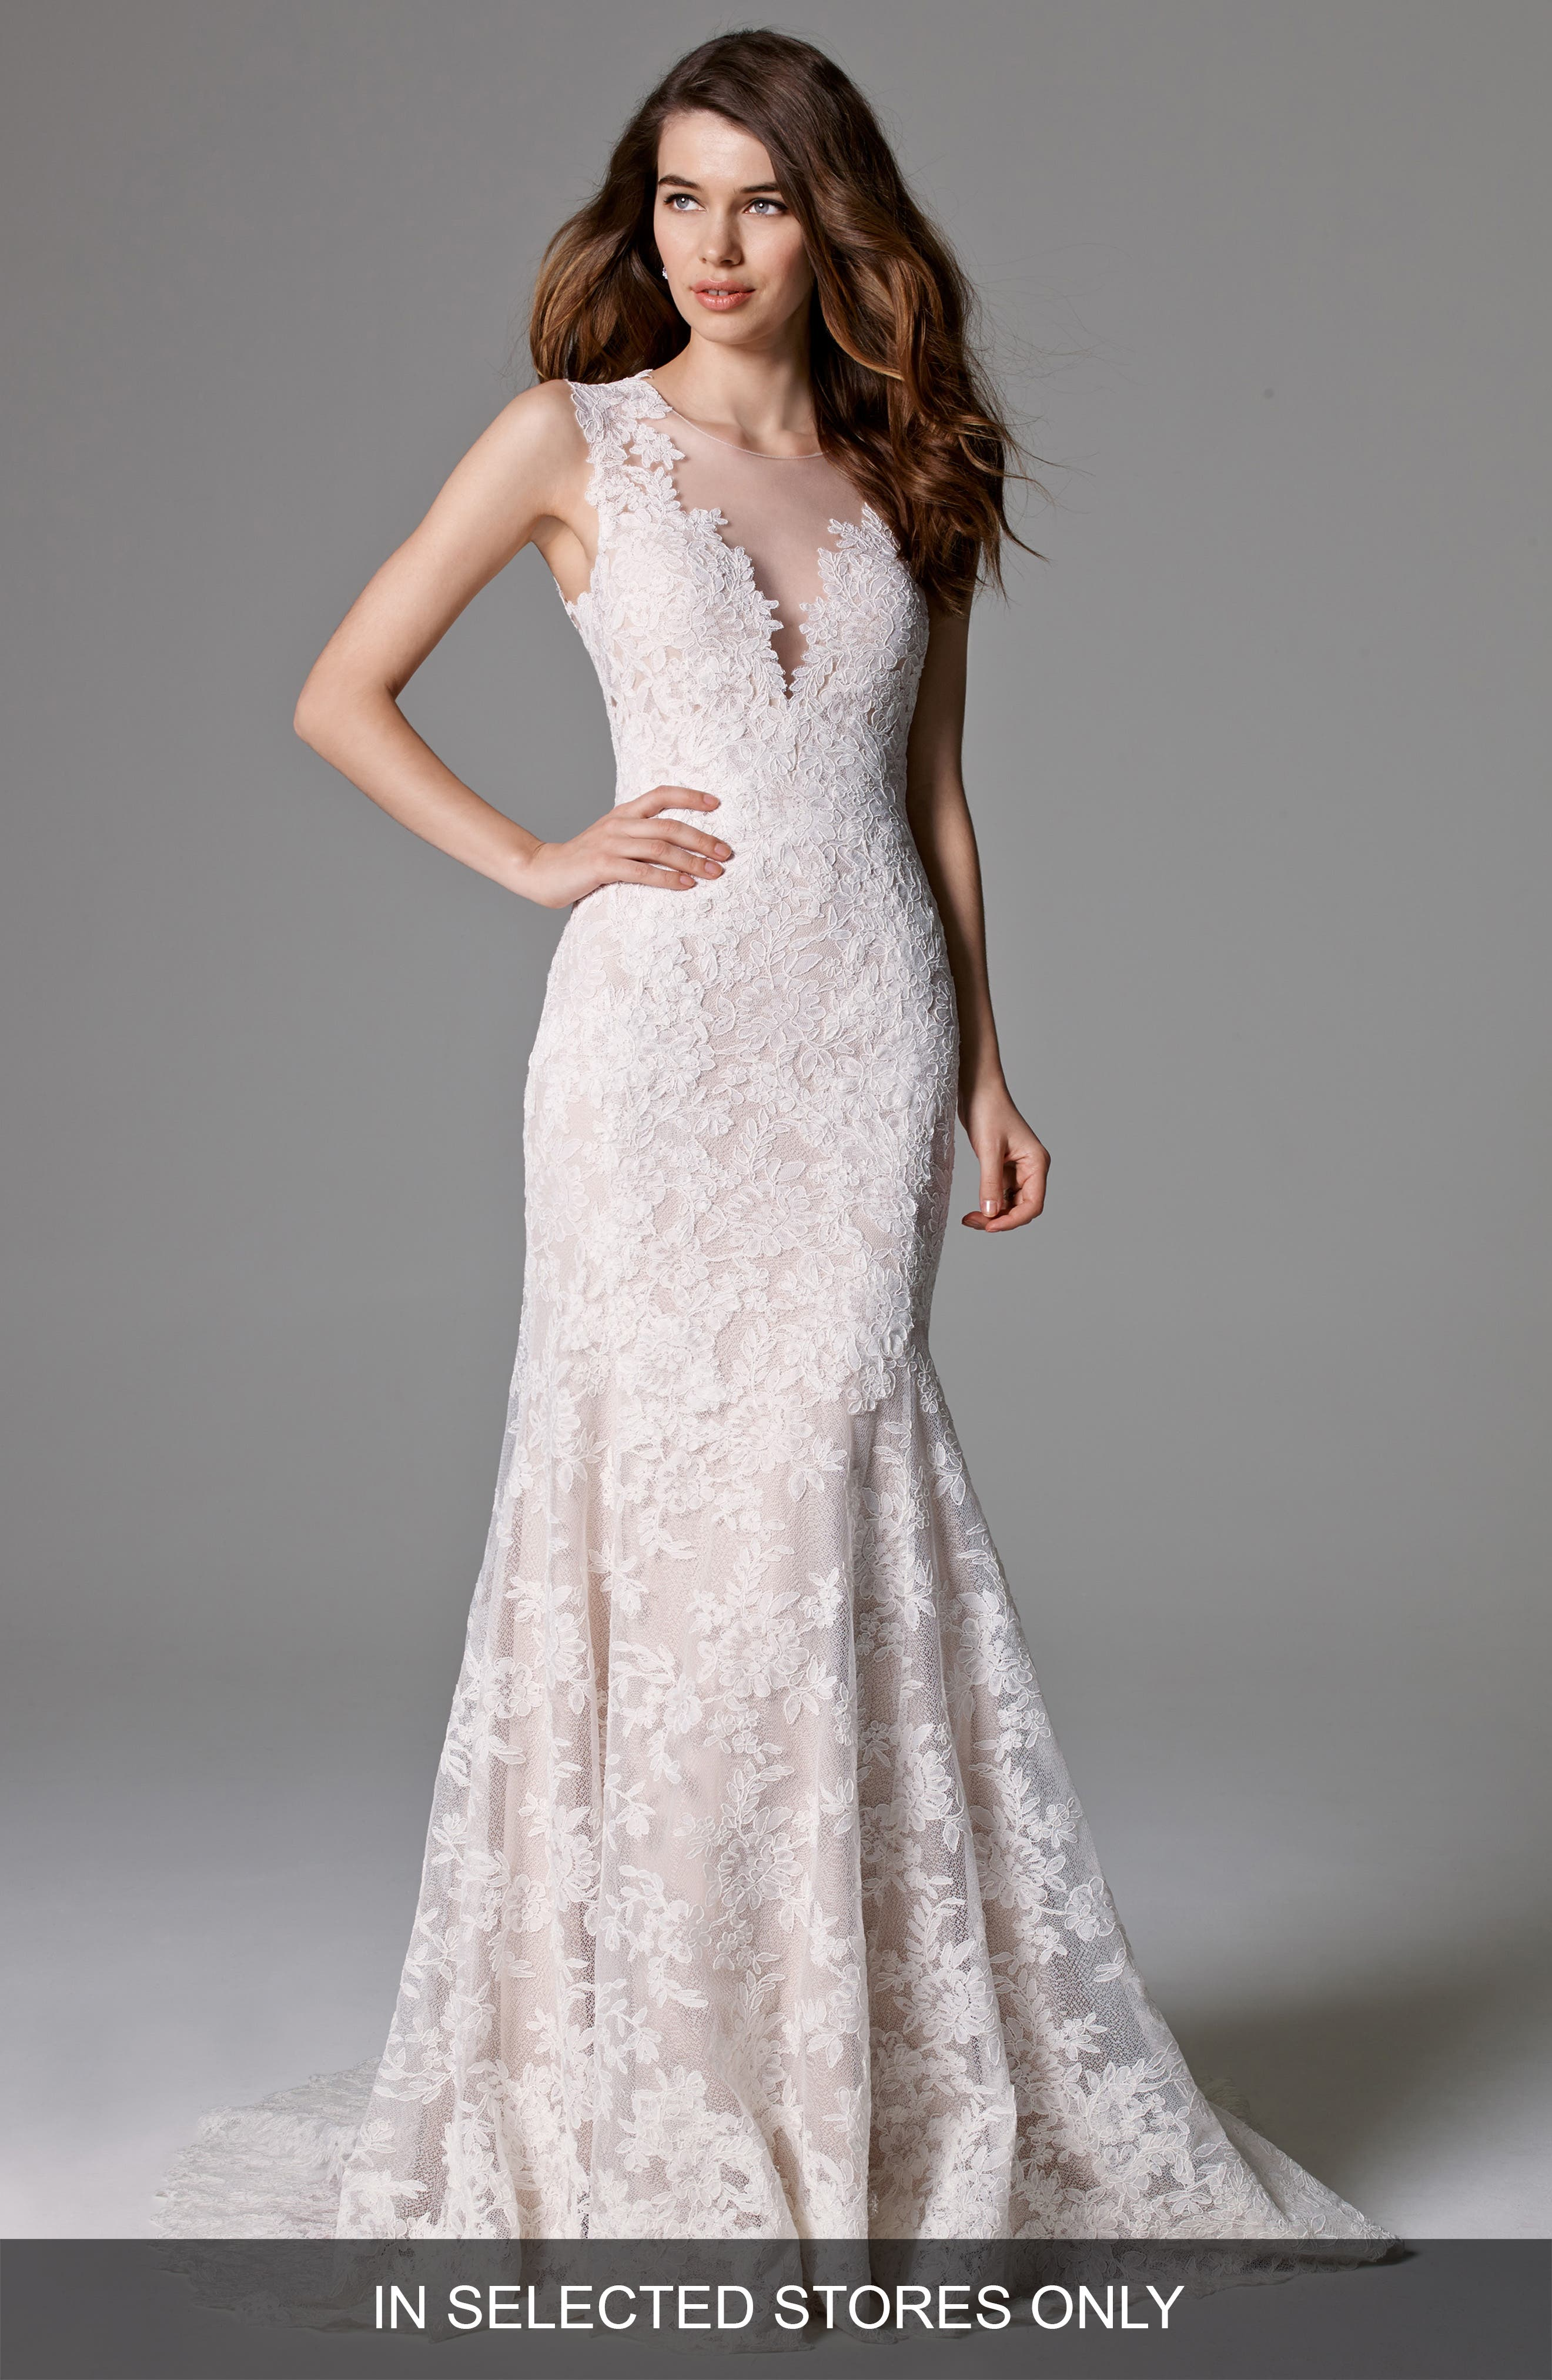 Ashland Lace Mermaid Gown,                         Main,                         color, IVORY